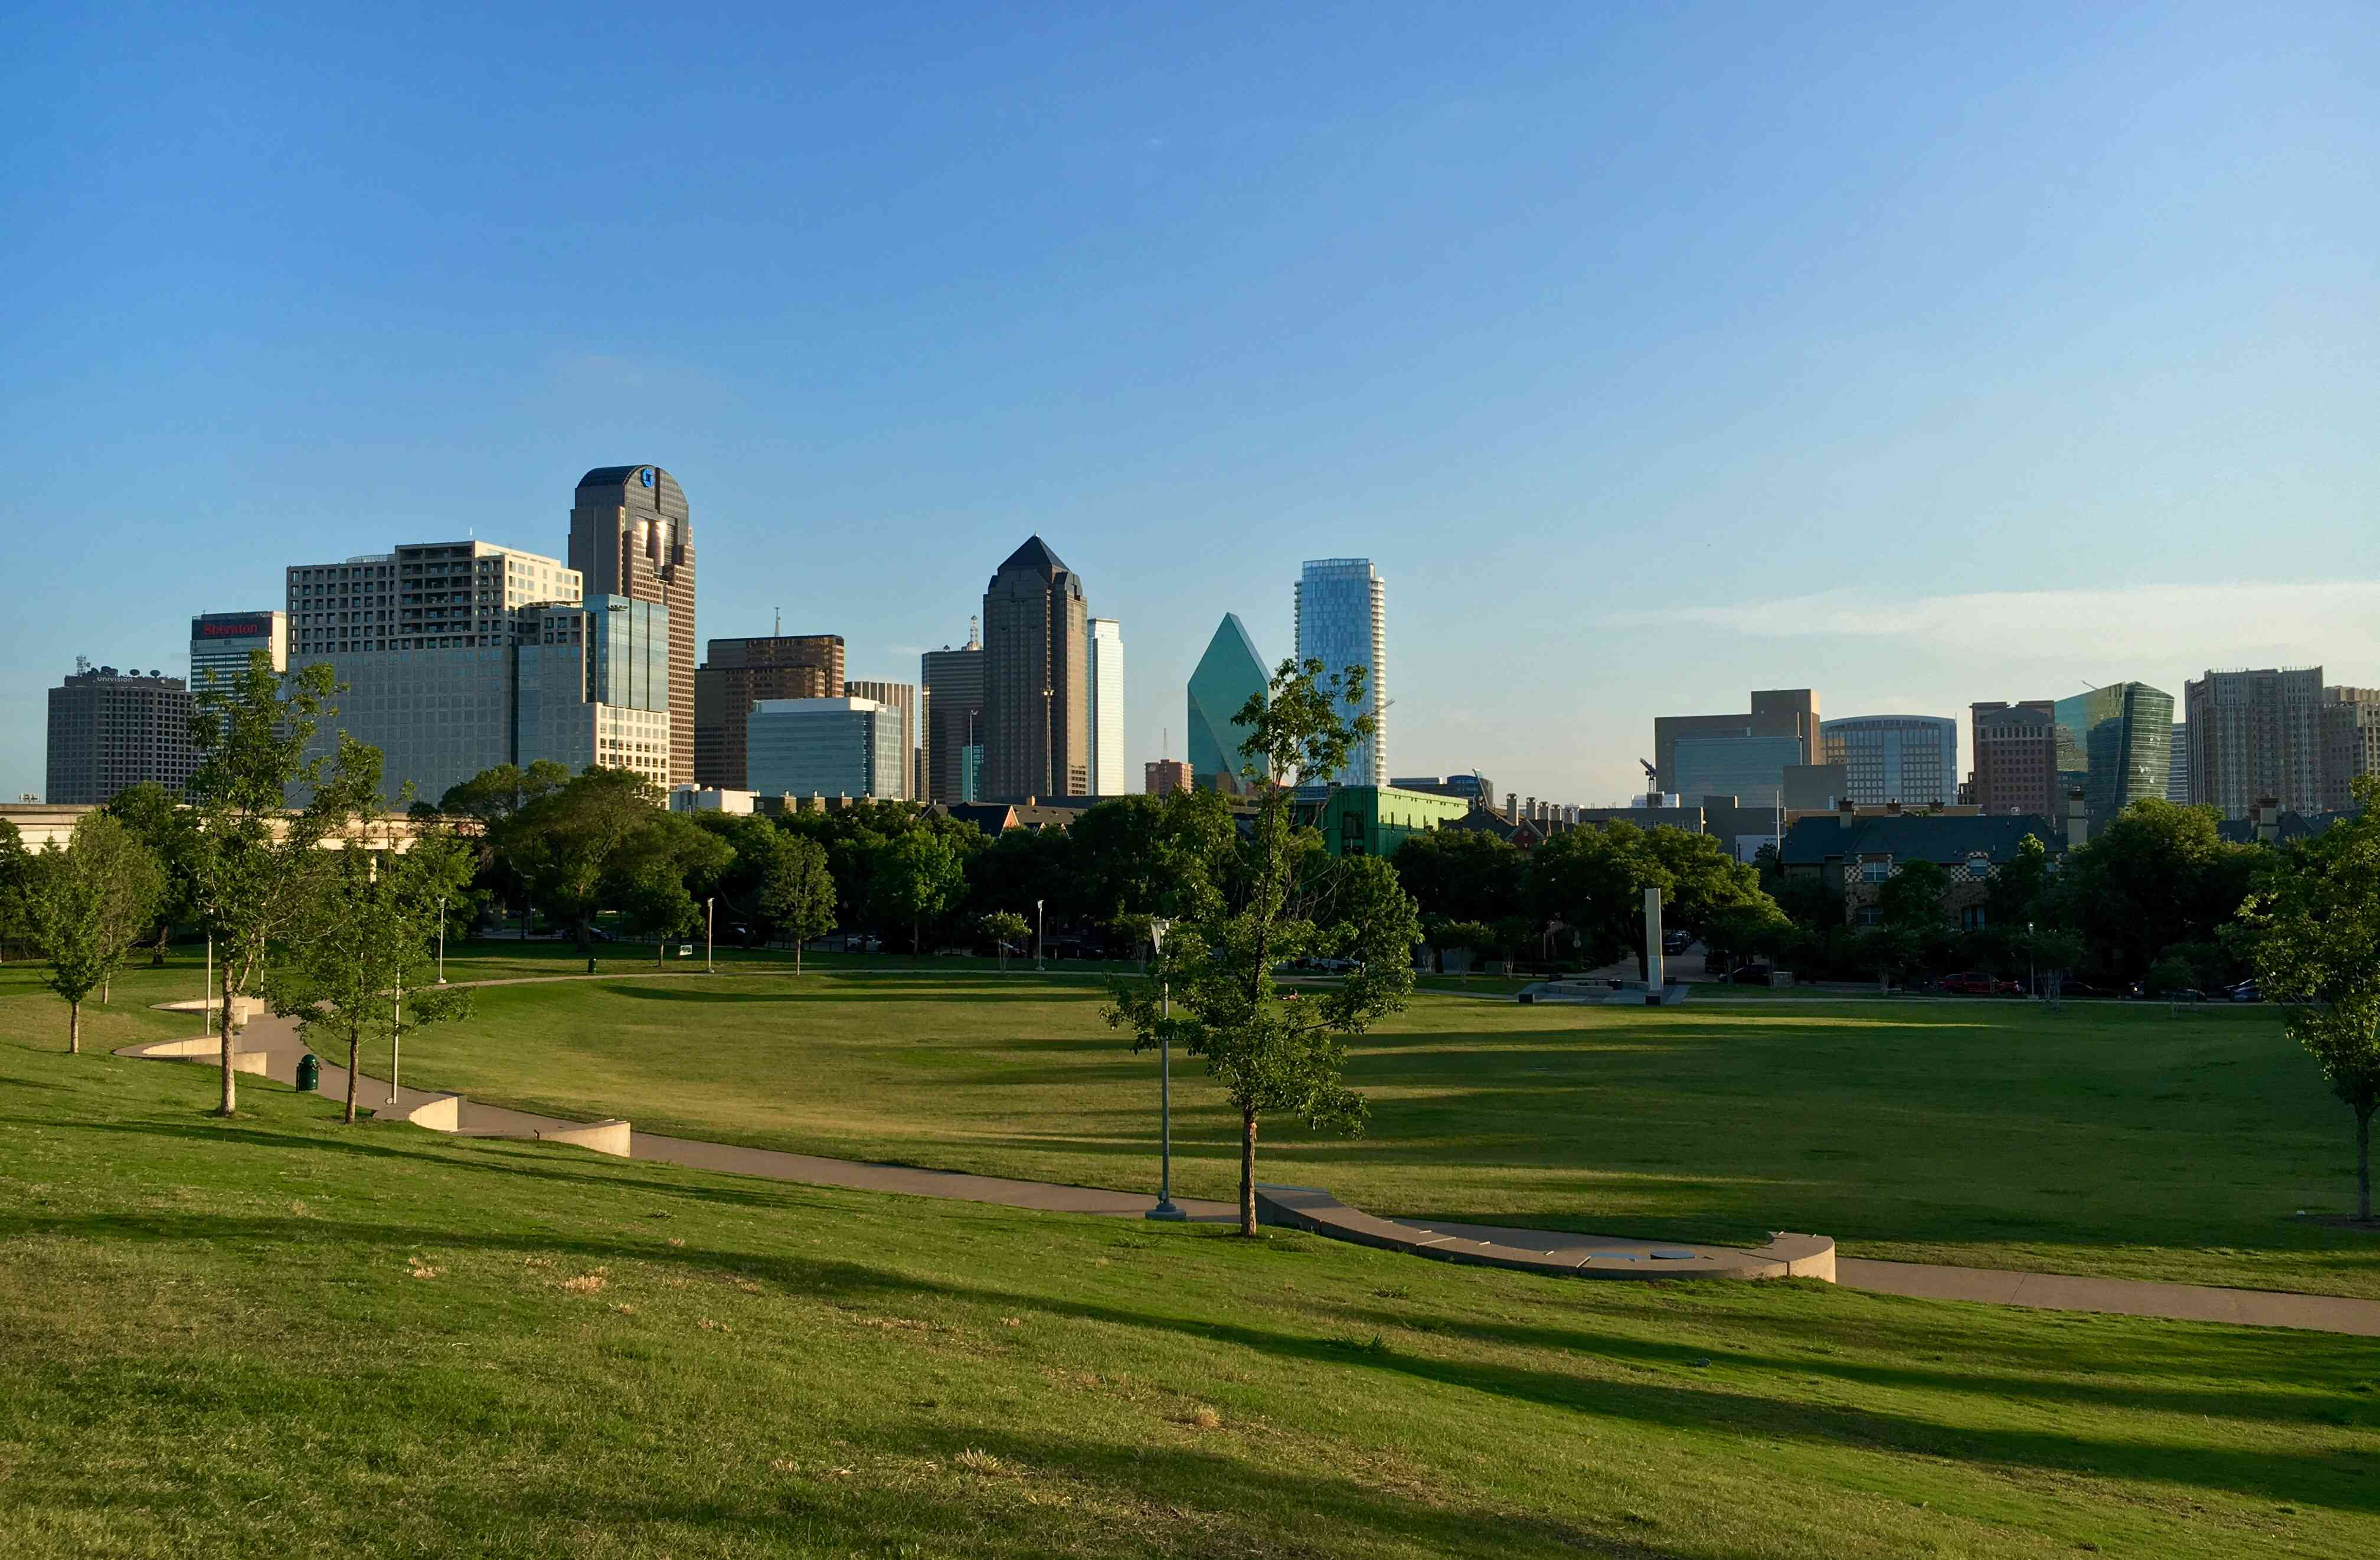 Downtown Dallas skyline as viewed from Griggs Park